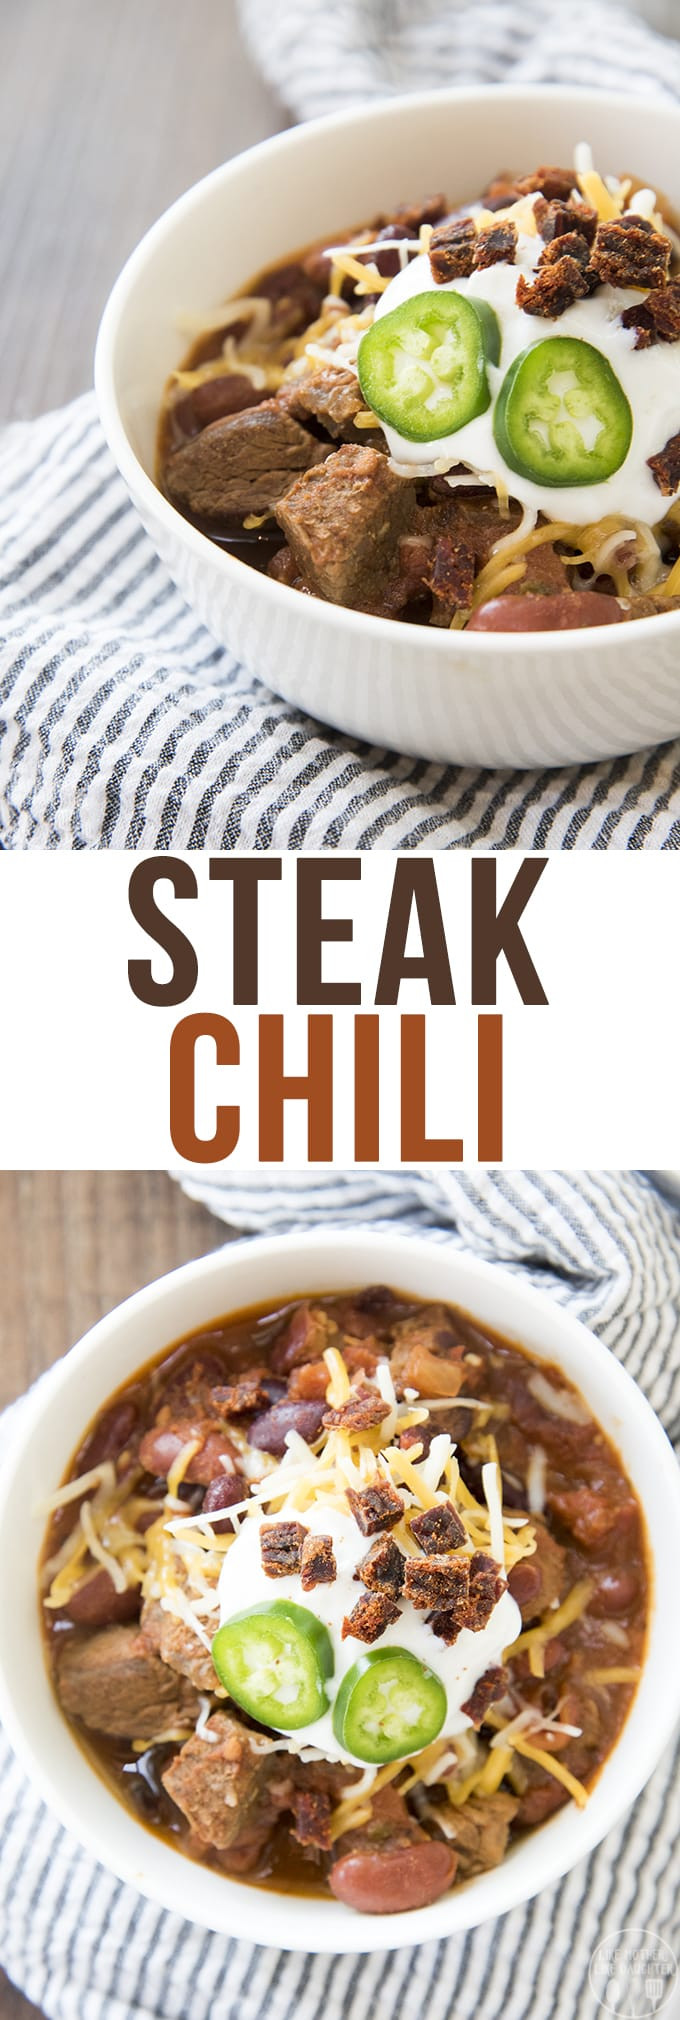 Chili With Steak And Ground Beef  Steak Chili – Like Mother Like Daughter